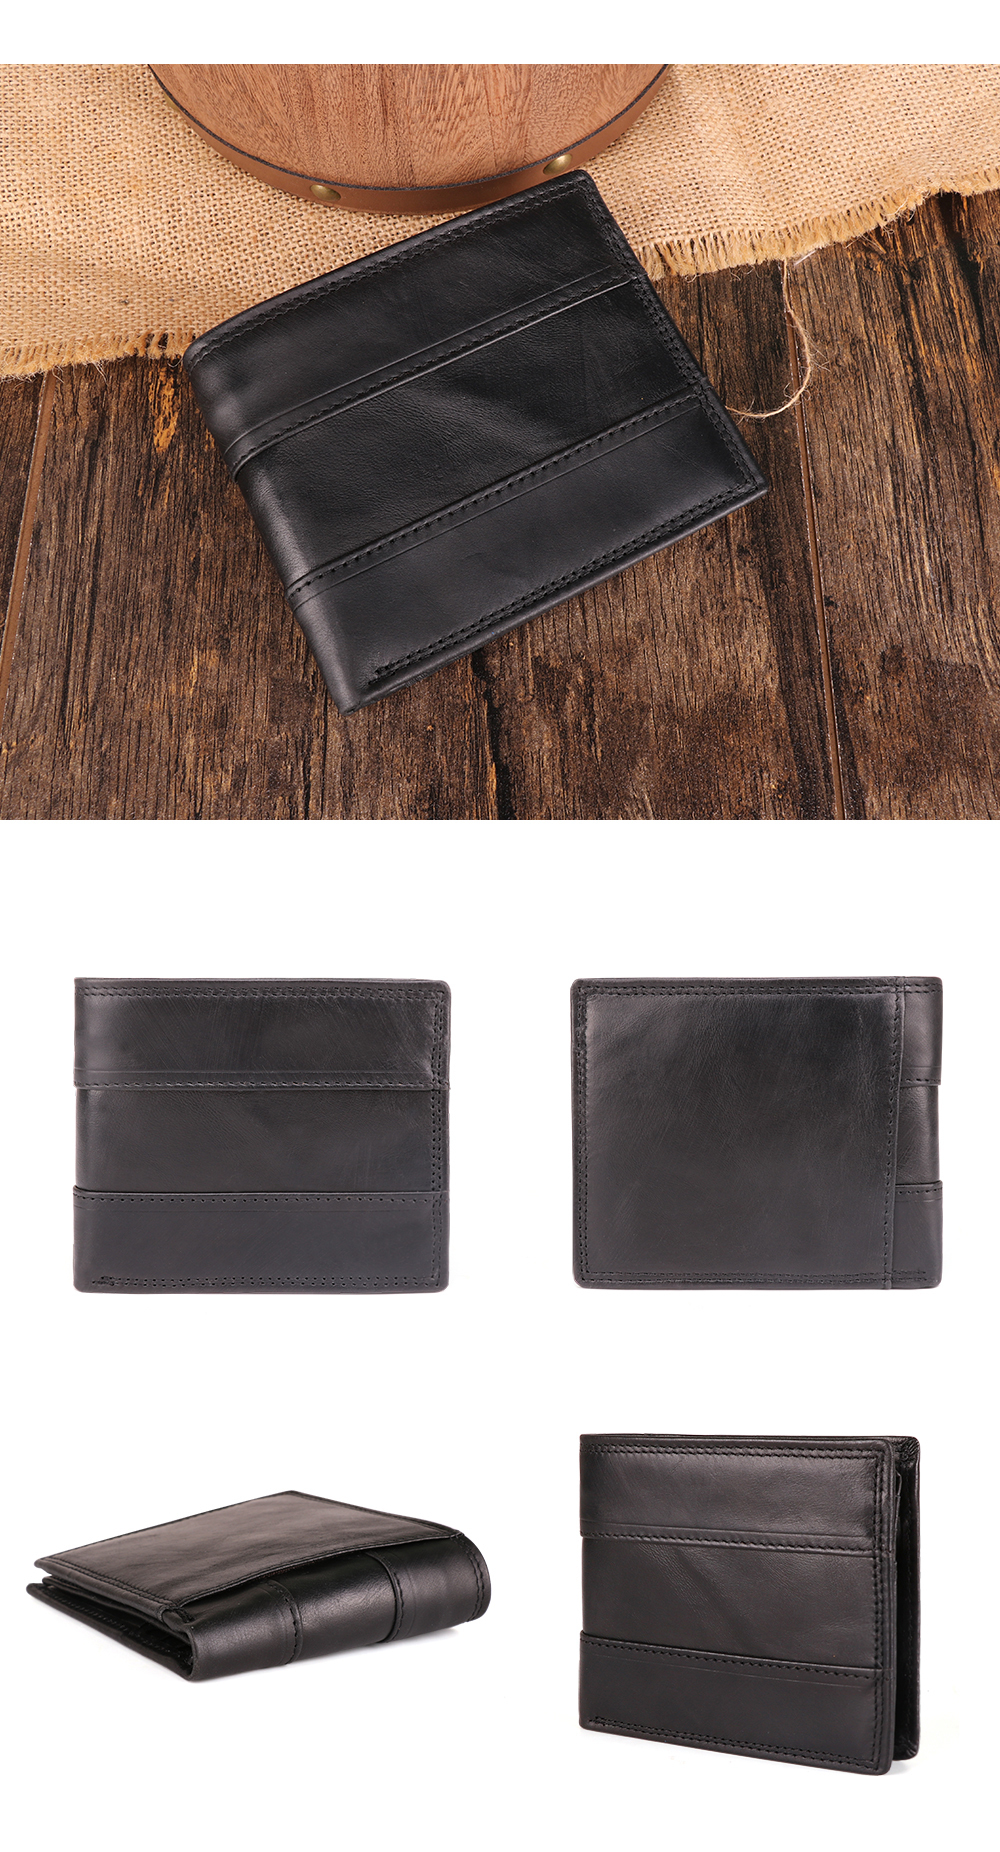 Hd8369c5b89694d6f8caf7953a2a76548H - GENODERN Cow Leather Men Wallets with Coin Pocket Vintage Male Purse Function Brown Genuine Leather Men Wallet with Card Holders